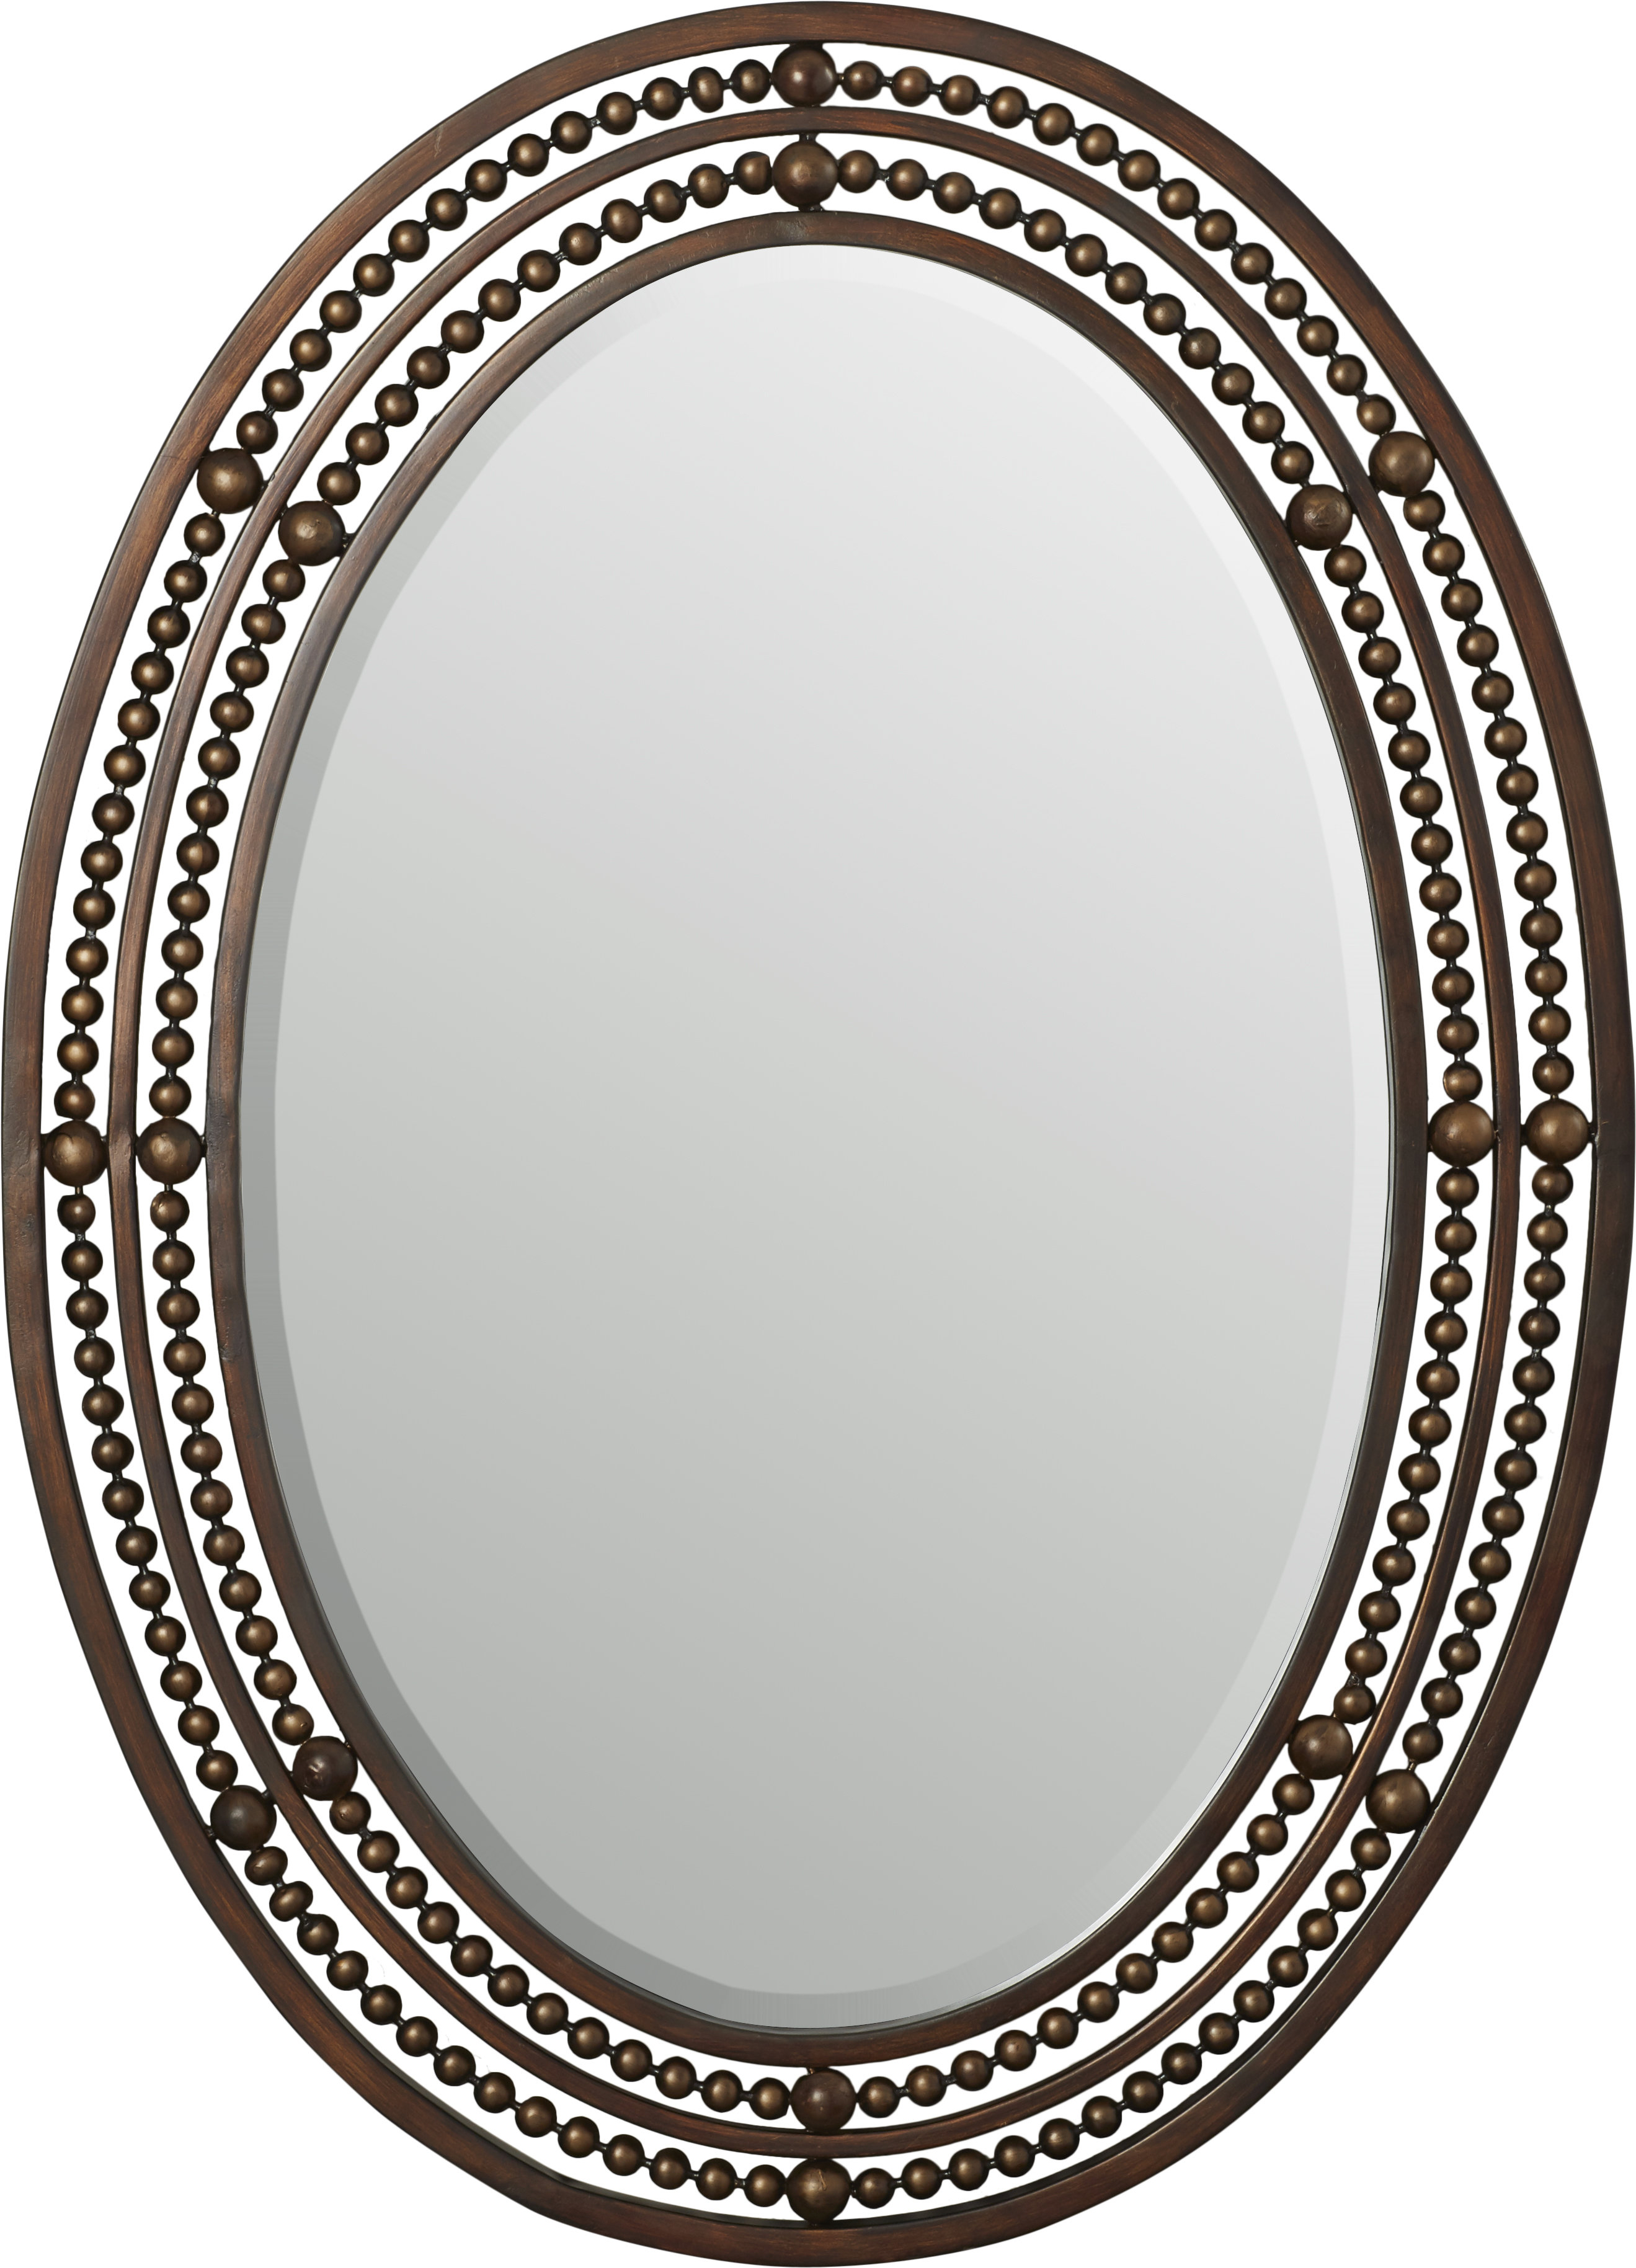 Leeper Oval Wall Mirror Pertaining To Burnes Oval Traditional Wall Mirrors (Image 8 of 20)